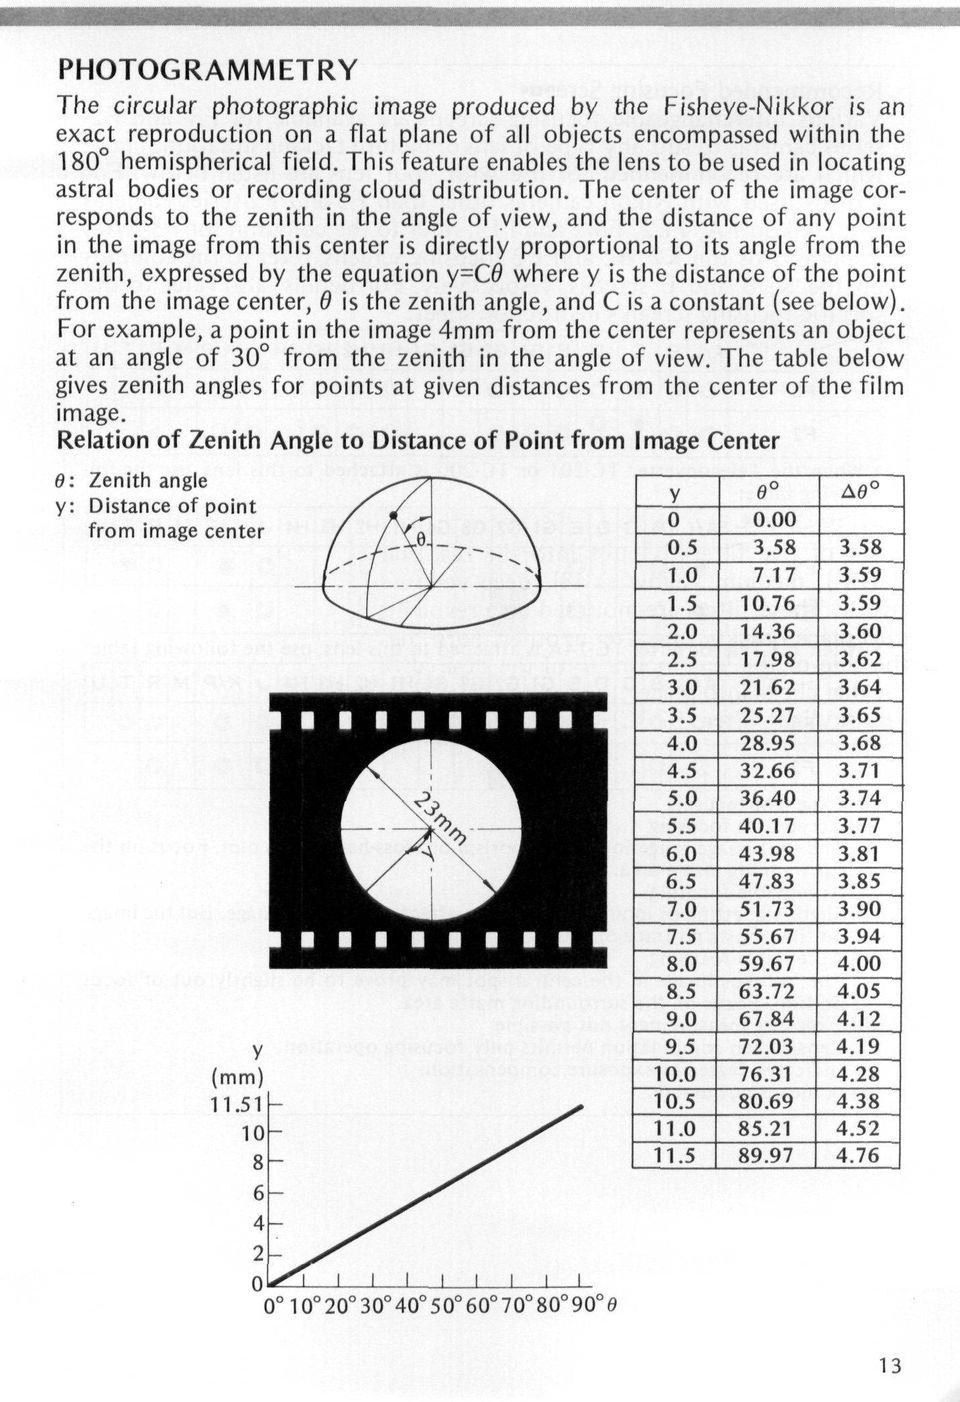 The center of the image corresponds to the zenith in the angle of view, and the distance of any point in the image from this center is directly proportional to its angle from the zenith, expressed by